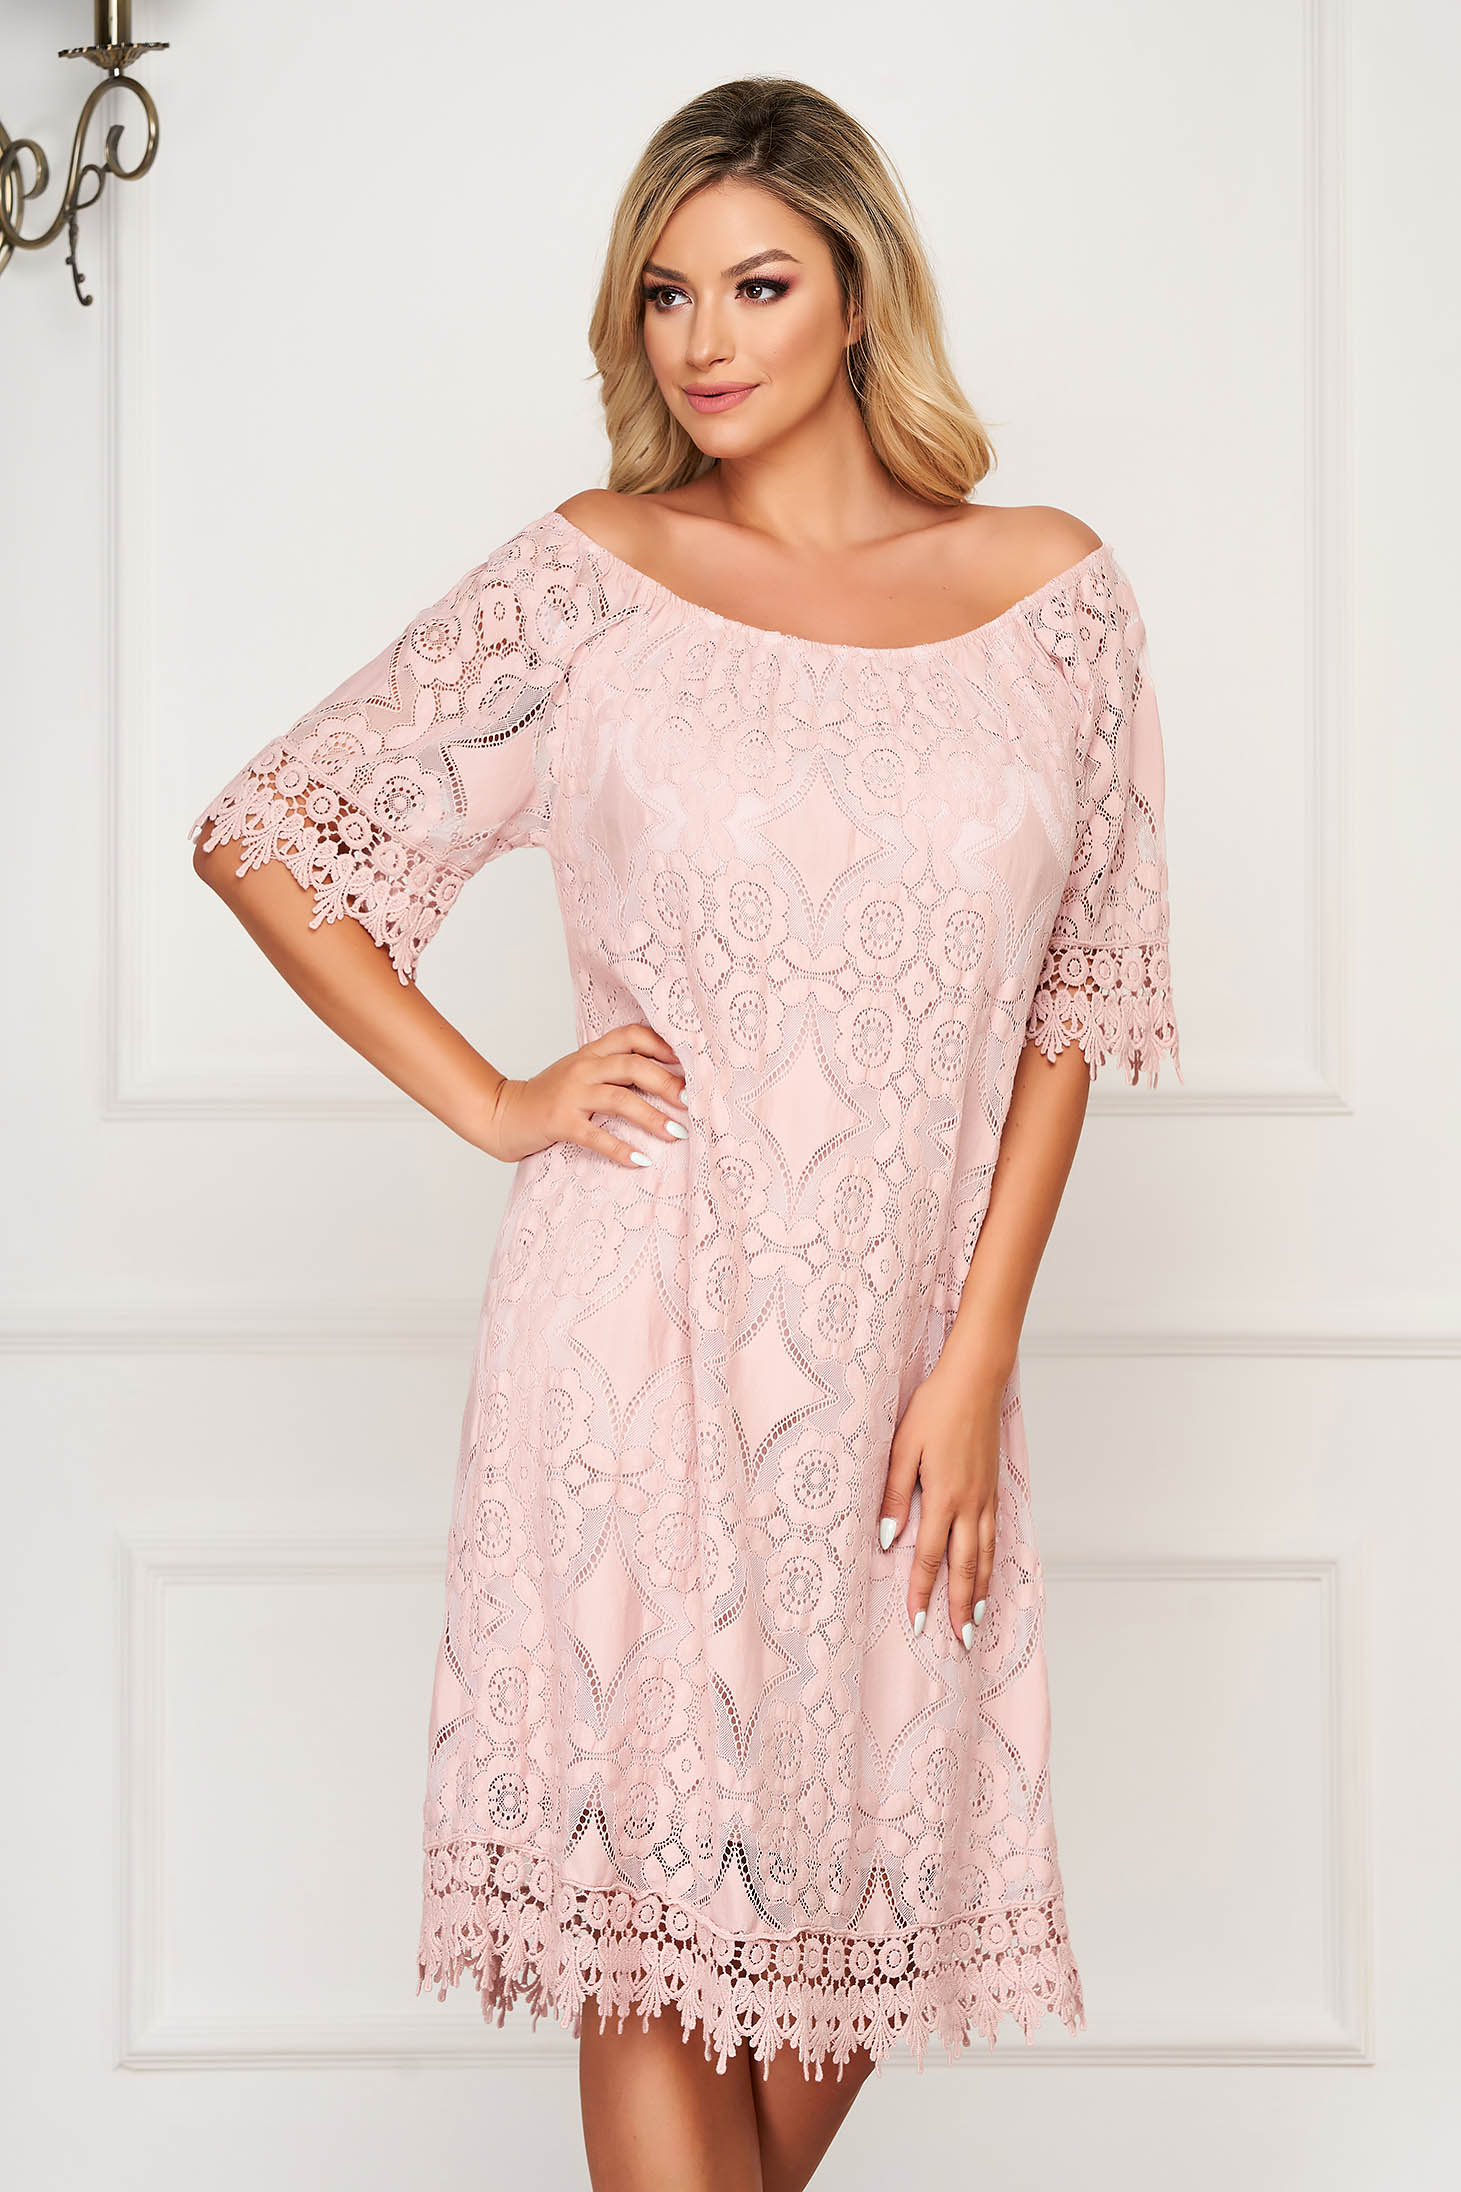 Lightpink dress short cut daily flared laced off-shoulder